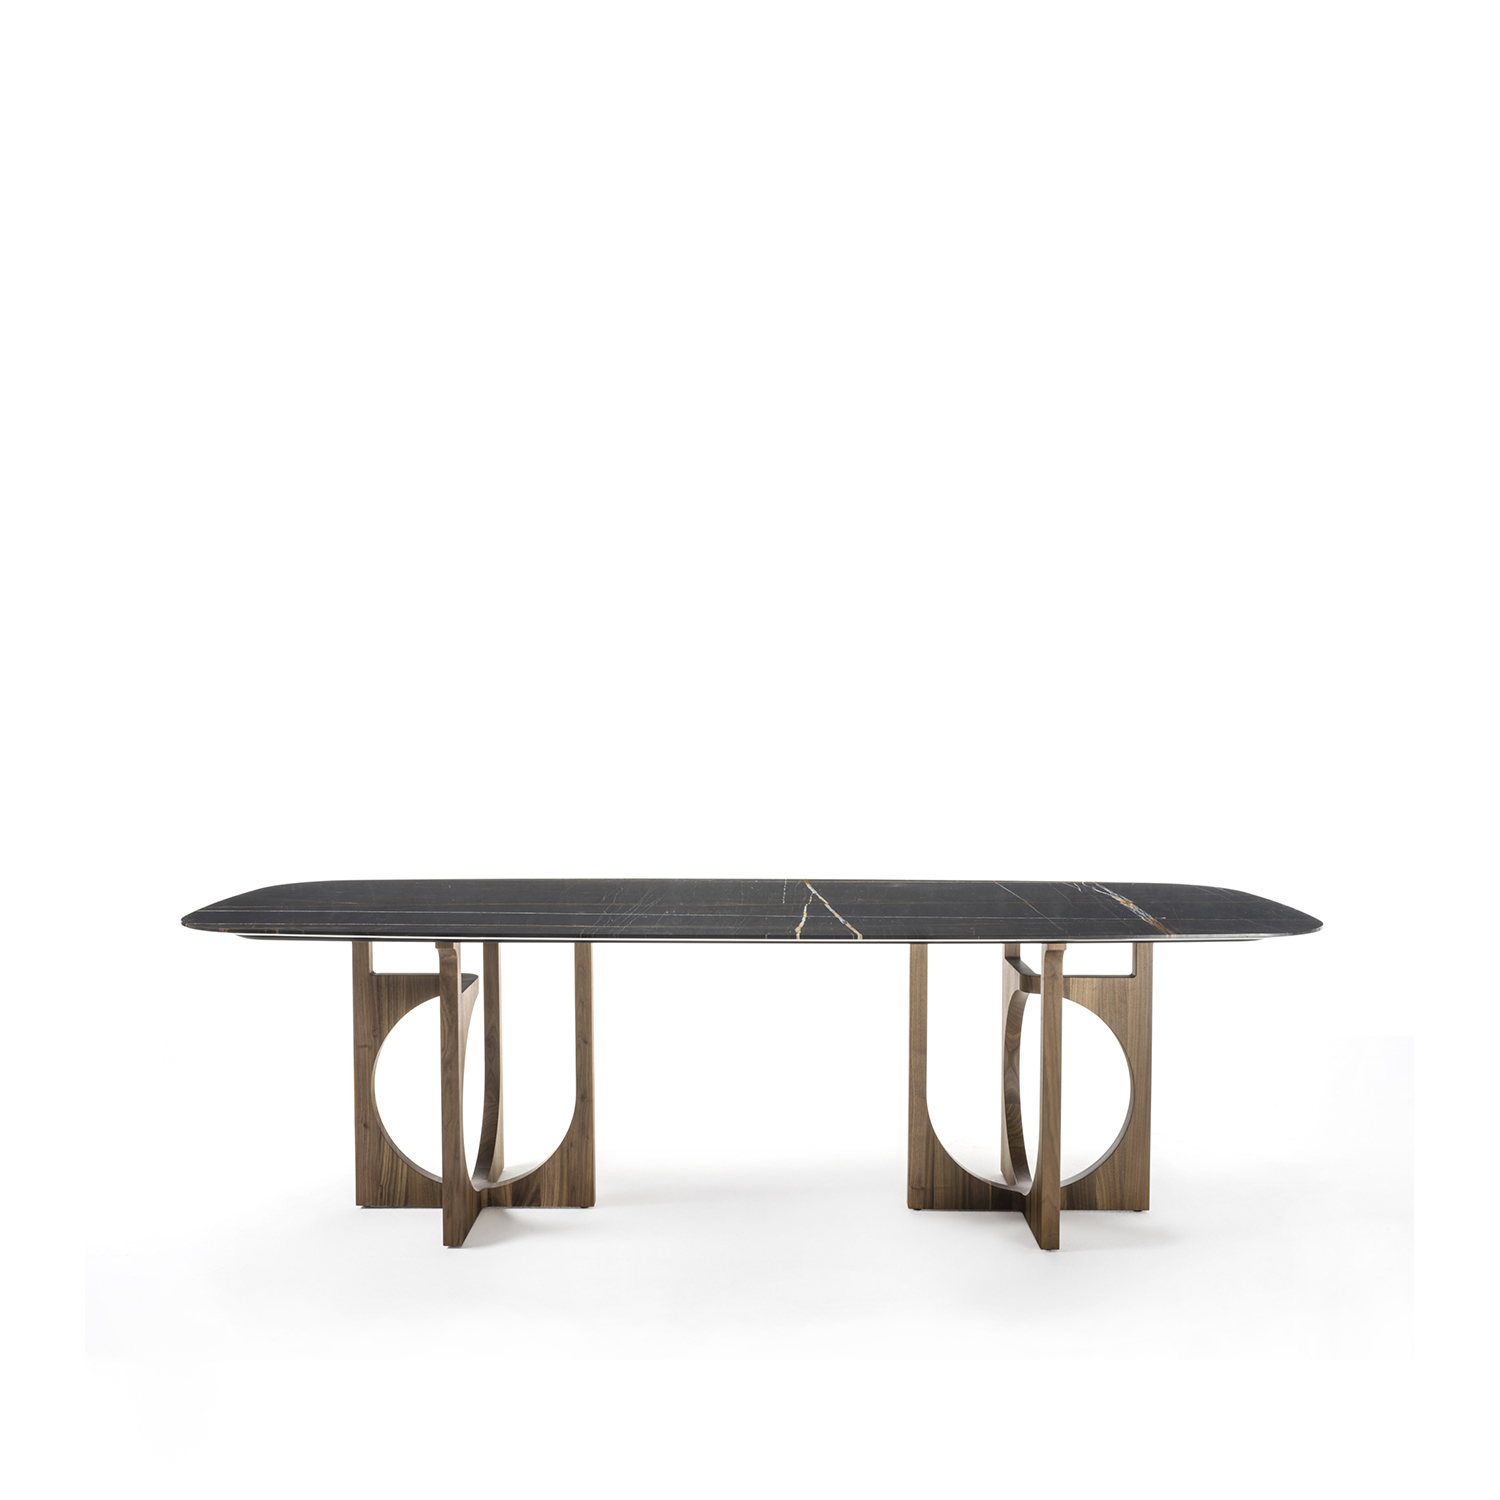 Vuoto Table with Double Base - Vuoto table is a combination of material and space that creates a sophisticated three dimensional structure. The asymmetric base in solid wood looks different from different viewing angles. The table can have different developments depending on the use of one or two bases, giving the possibility to have tops of different shapes and sizes. Precious wood essences are combined with marble and glass in order to make Vuoto even more valuable. Also available with just one base in a short variant. | Matter of Stuff